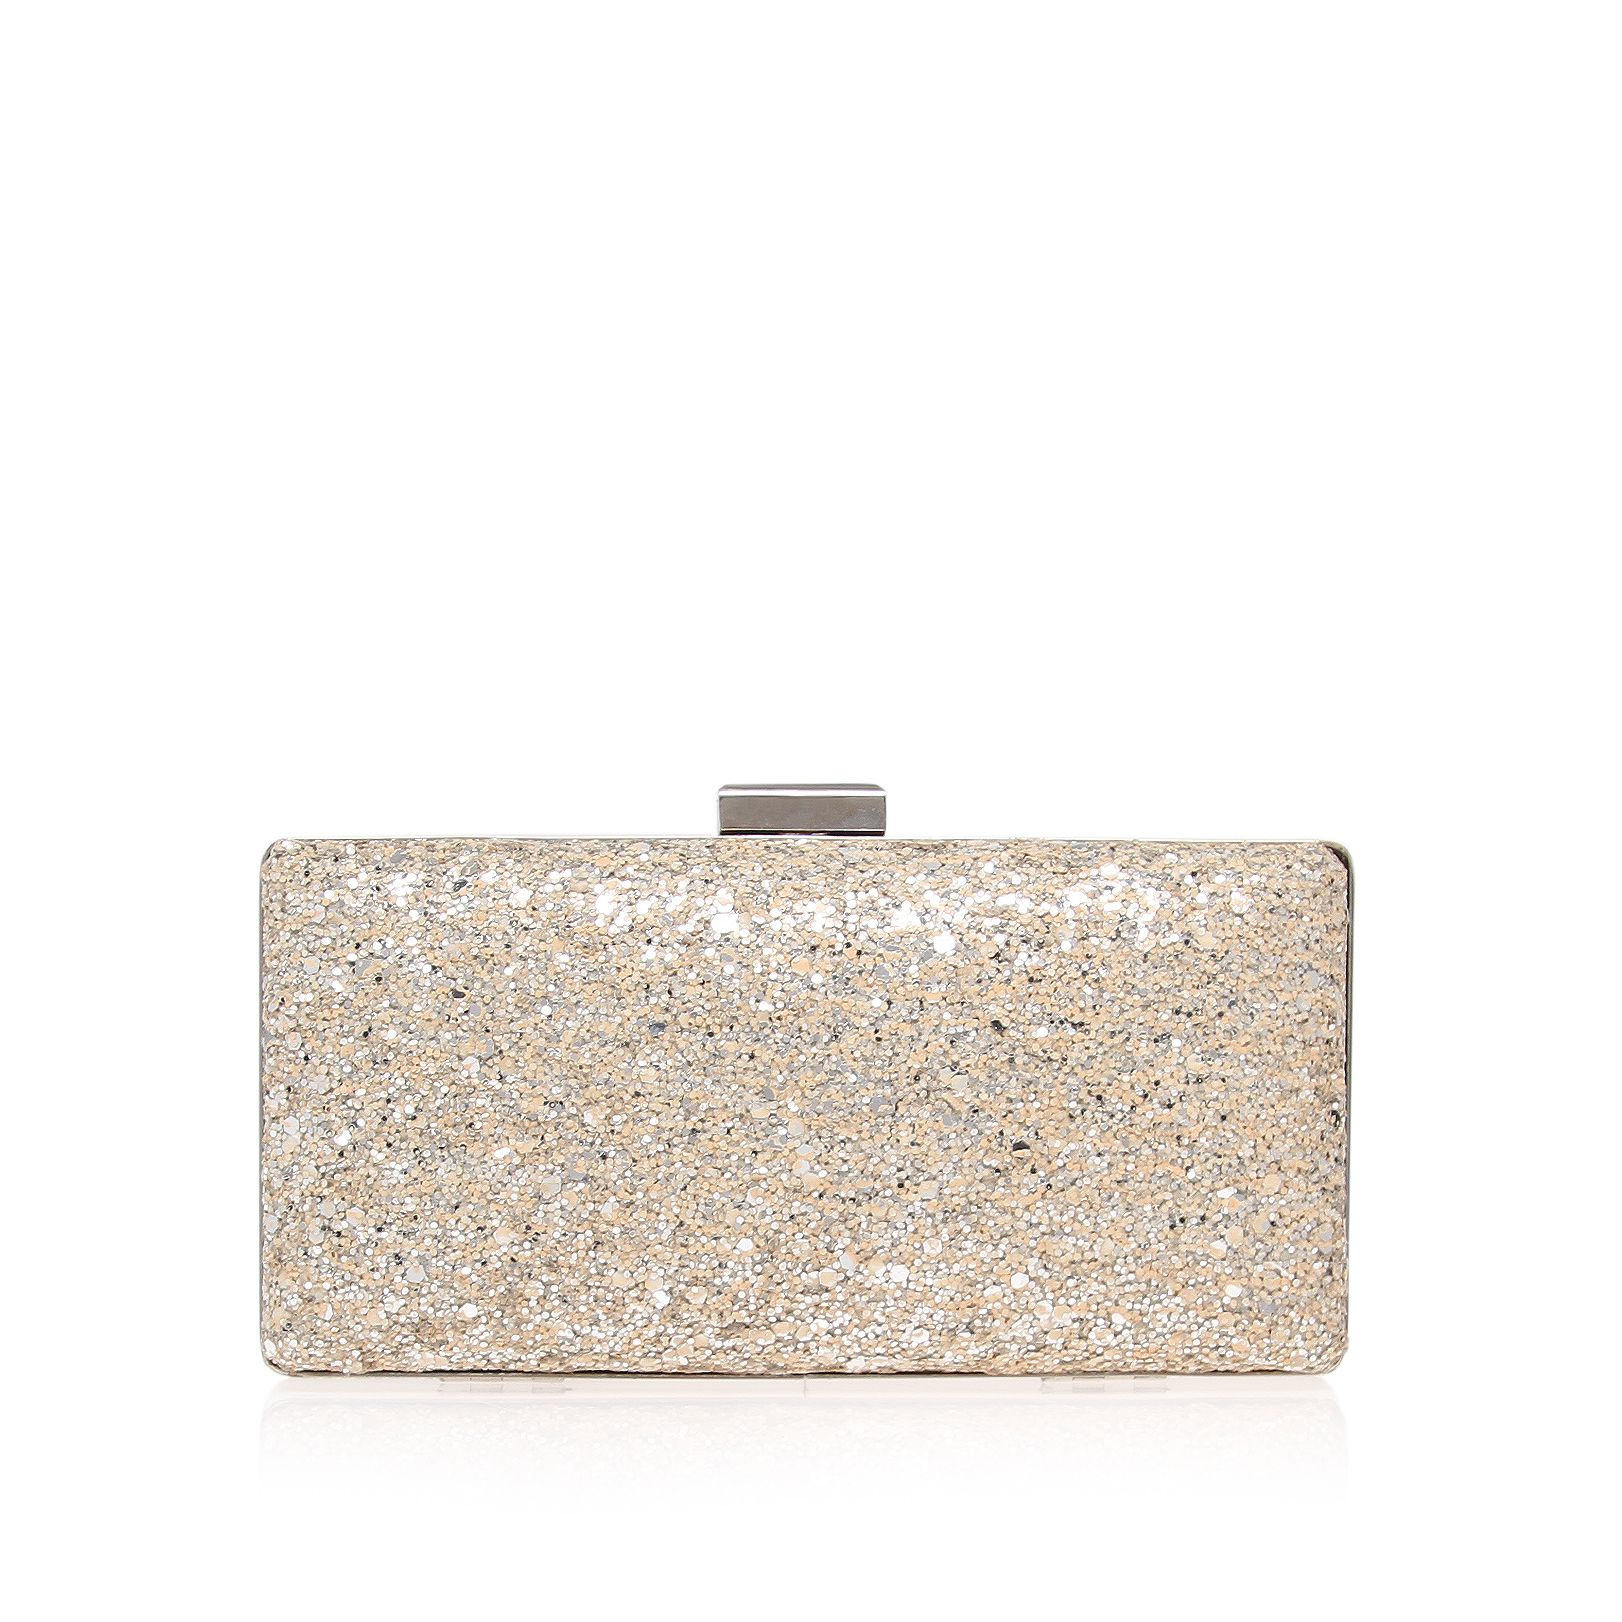 Tabitha Silver Clutch Bag